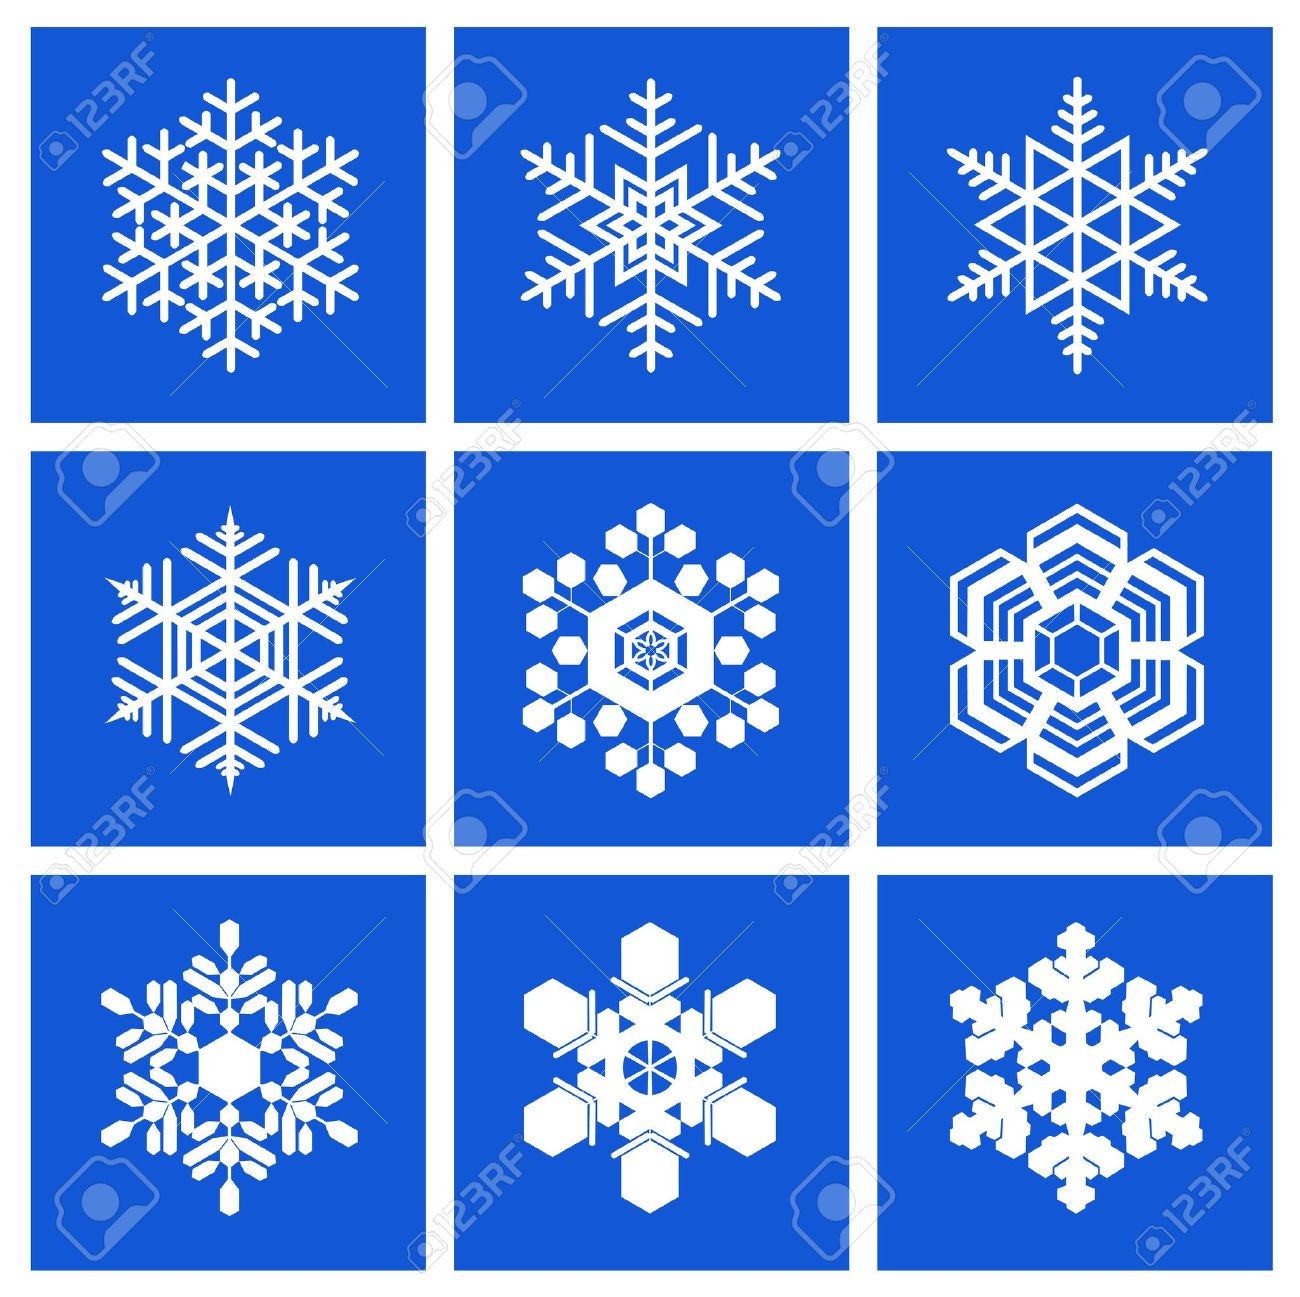 Snowflakes of different shapes are shown in the image. Stock Vector - 11270720